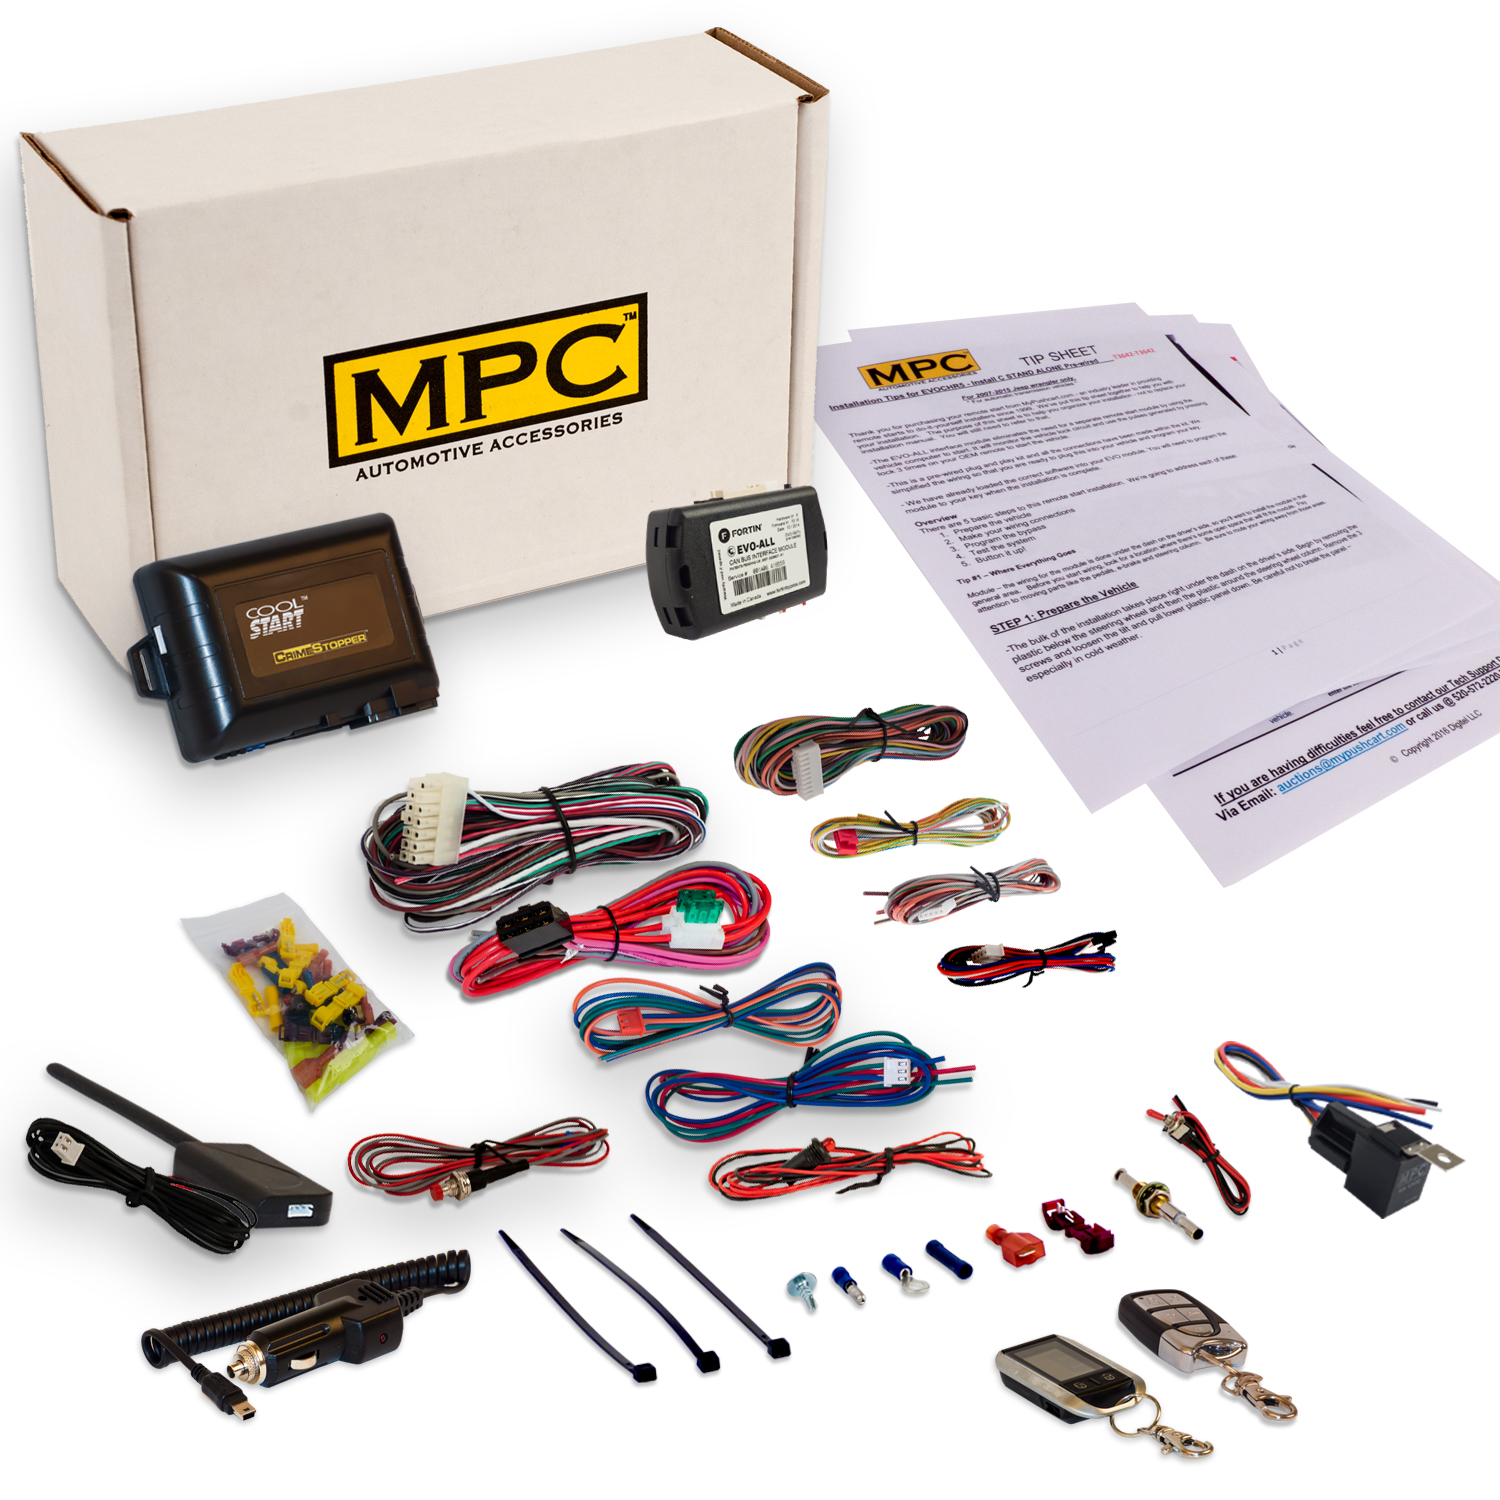 MPC Complete 2-Way LCD Remote Start/Entry For 2010-2011 T...